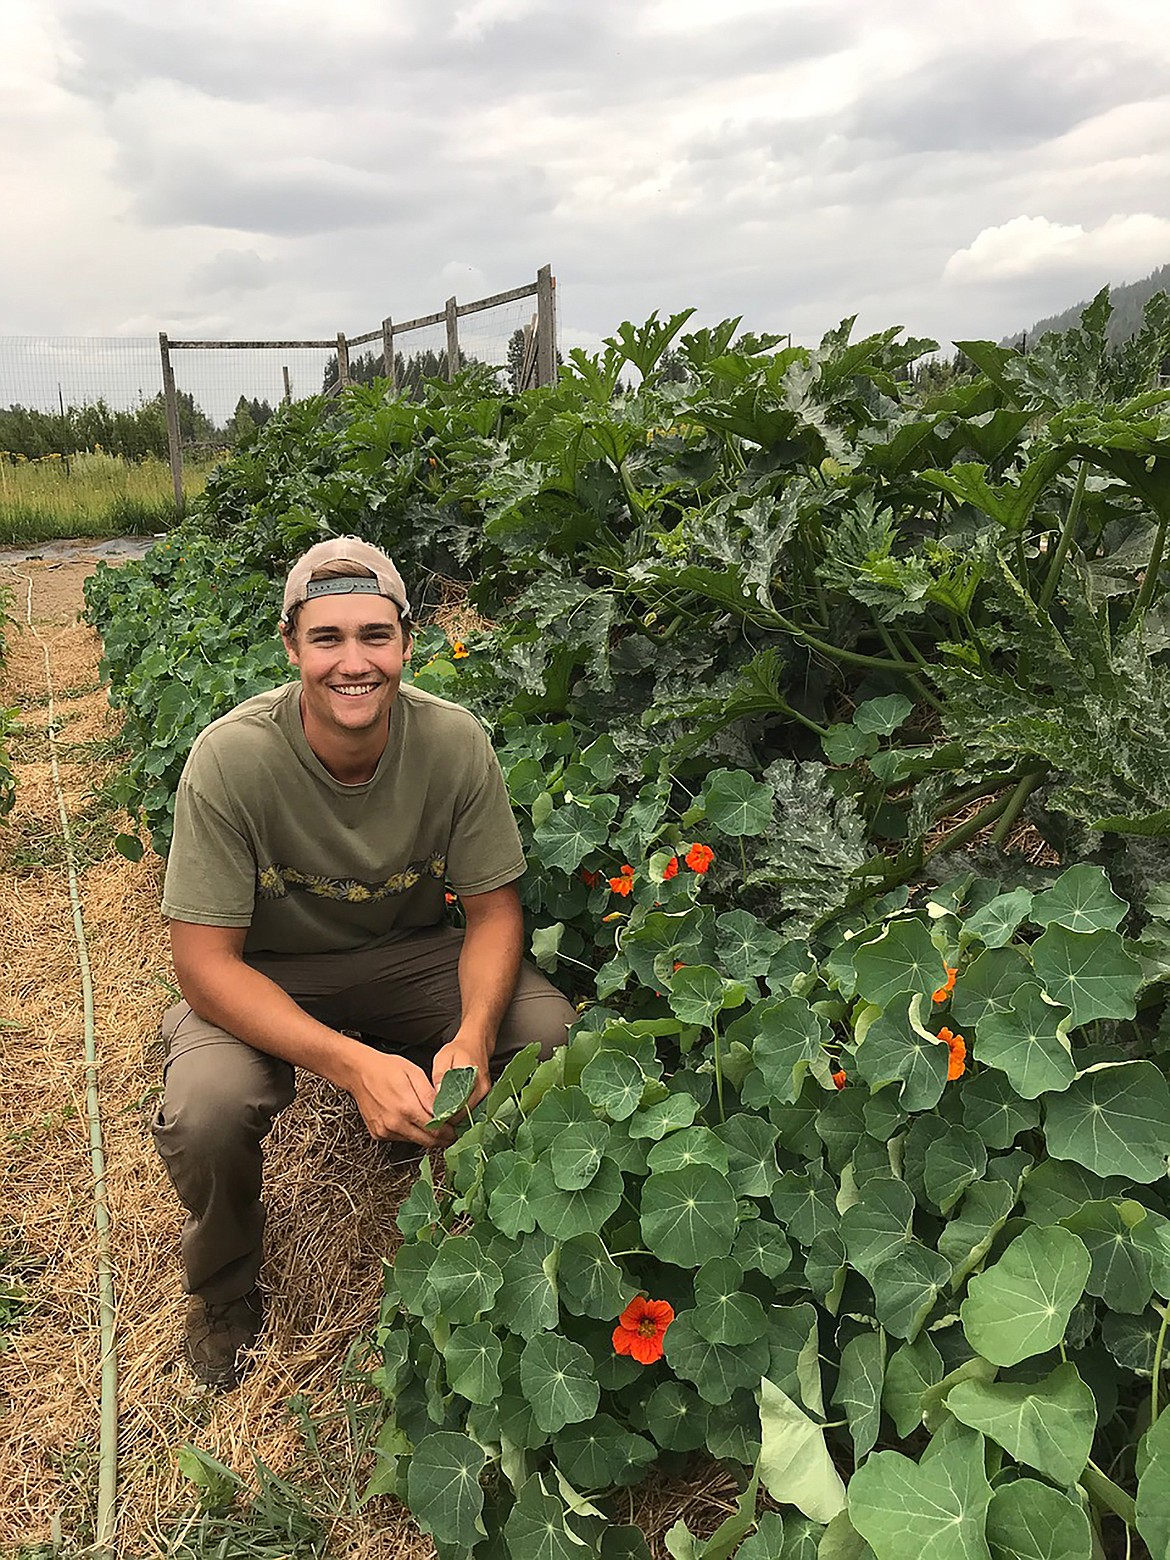 The center donated several hundred pounds of produce to the Bonner Community Food Bank. Youngdahl used a broad fork tool instead of a tiller and utilized methods such as Hugelkultur beds, shown here, to improve soil conditions and to make care taking easier, in the long run.